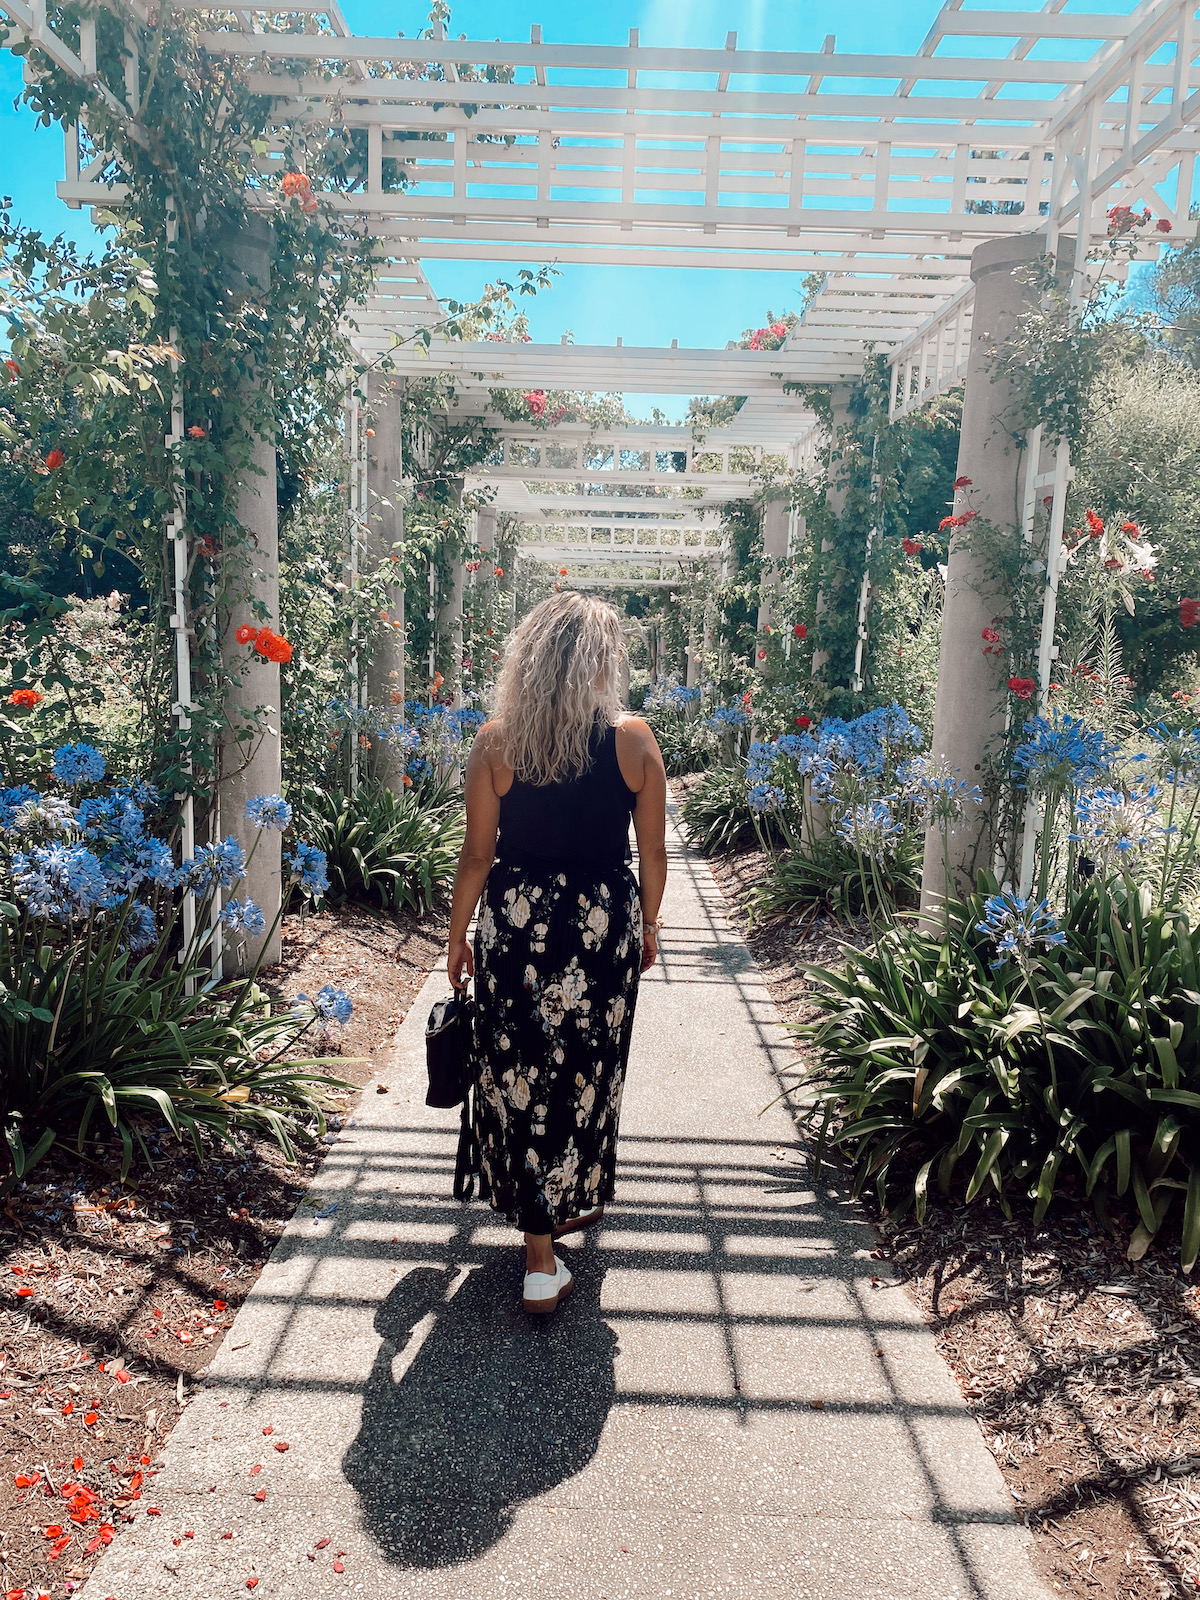 walking through Huntington Garden and Library in Los Angeles